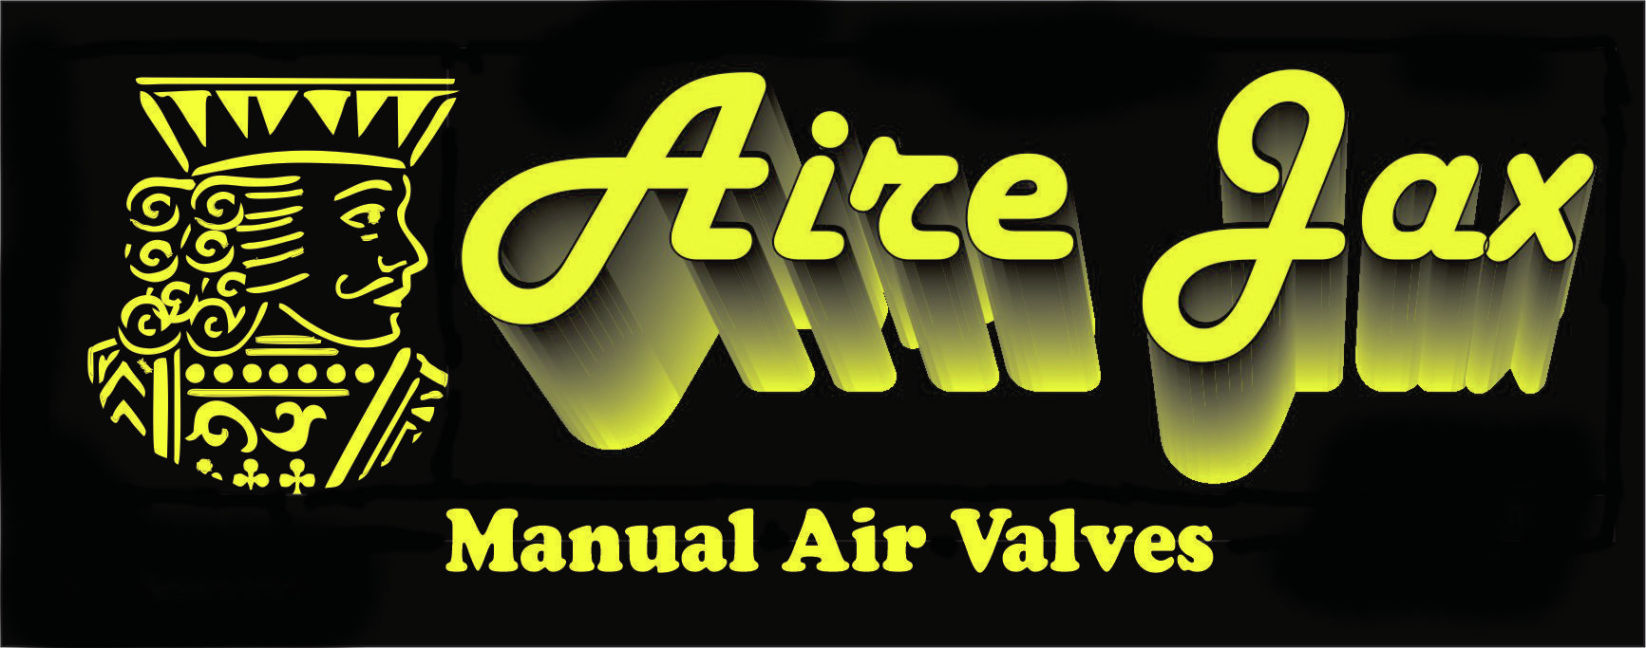 Mainual Air Valves